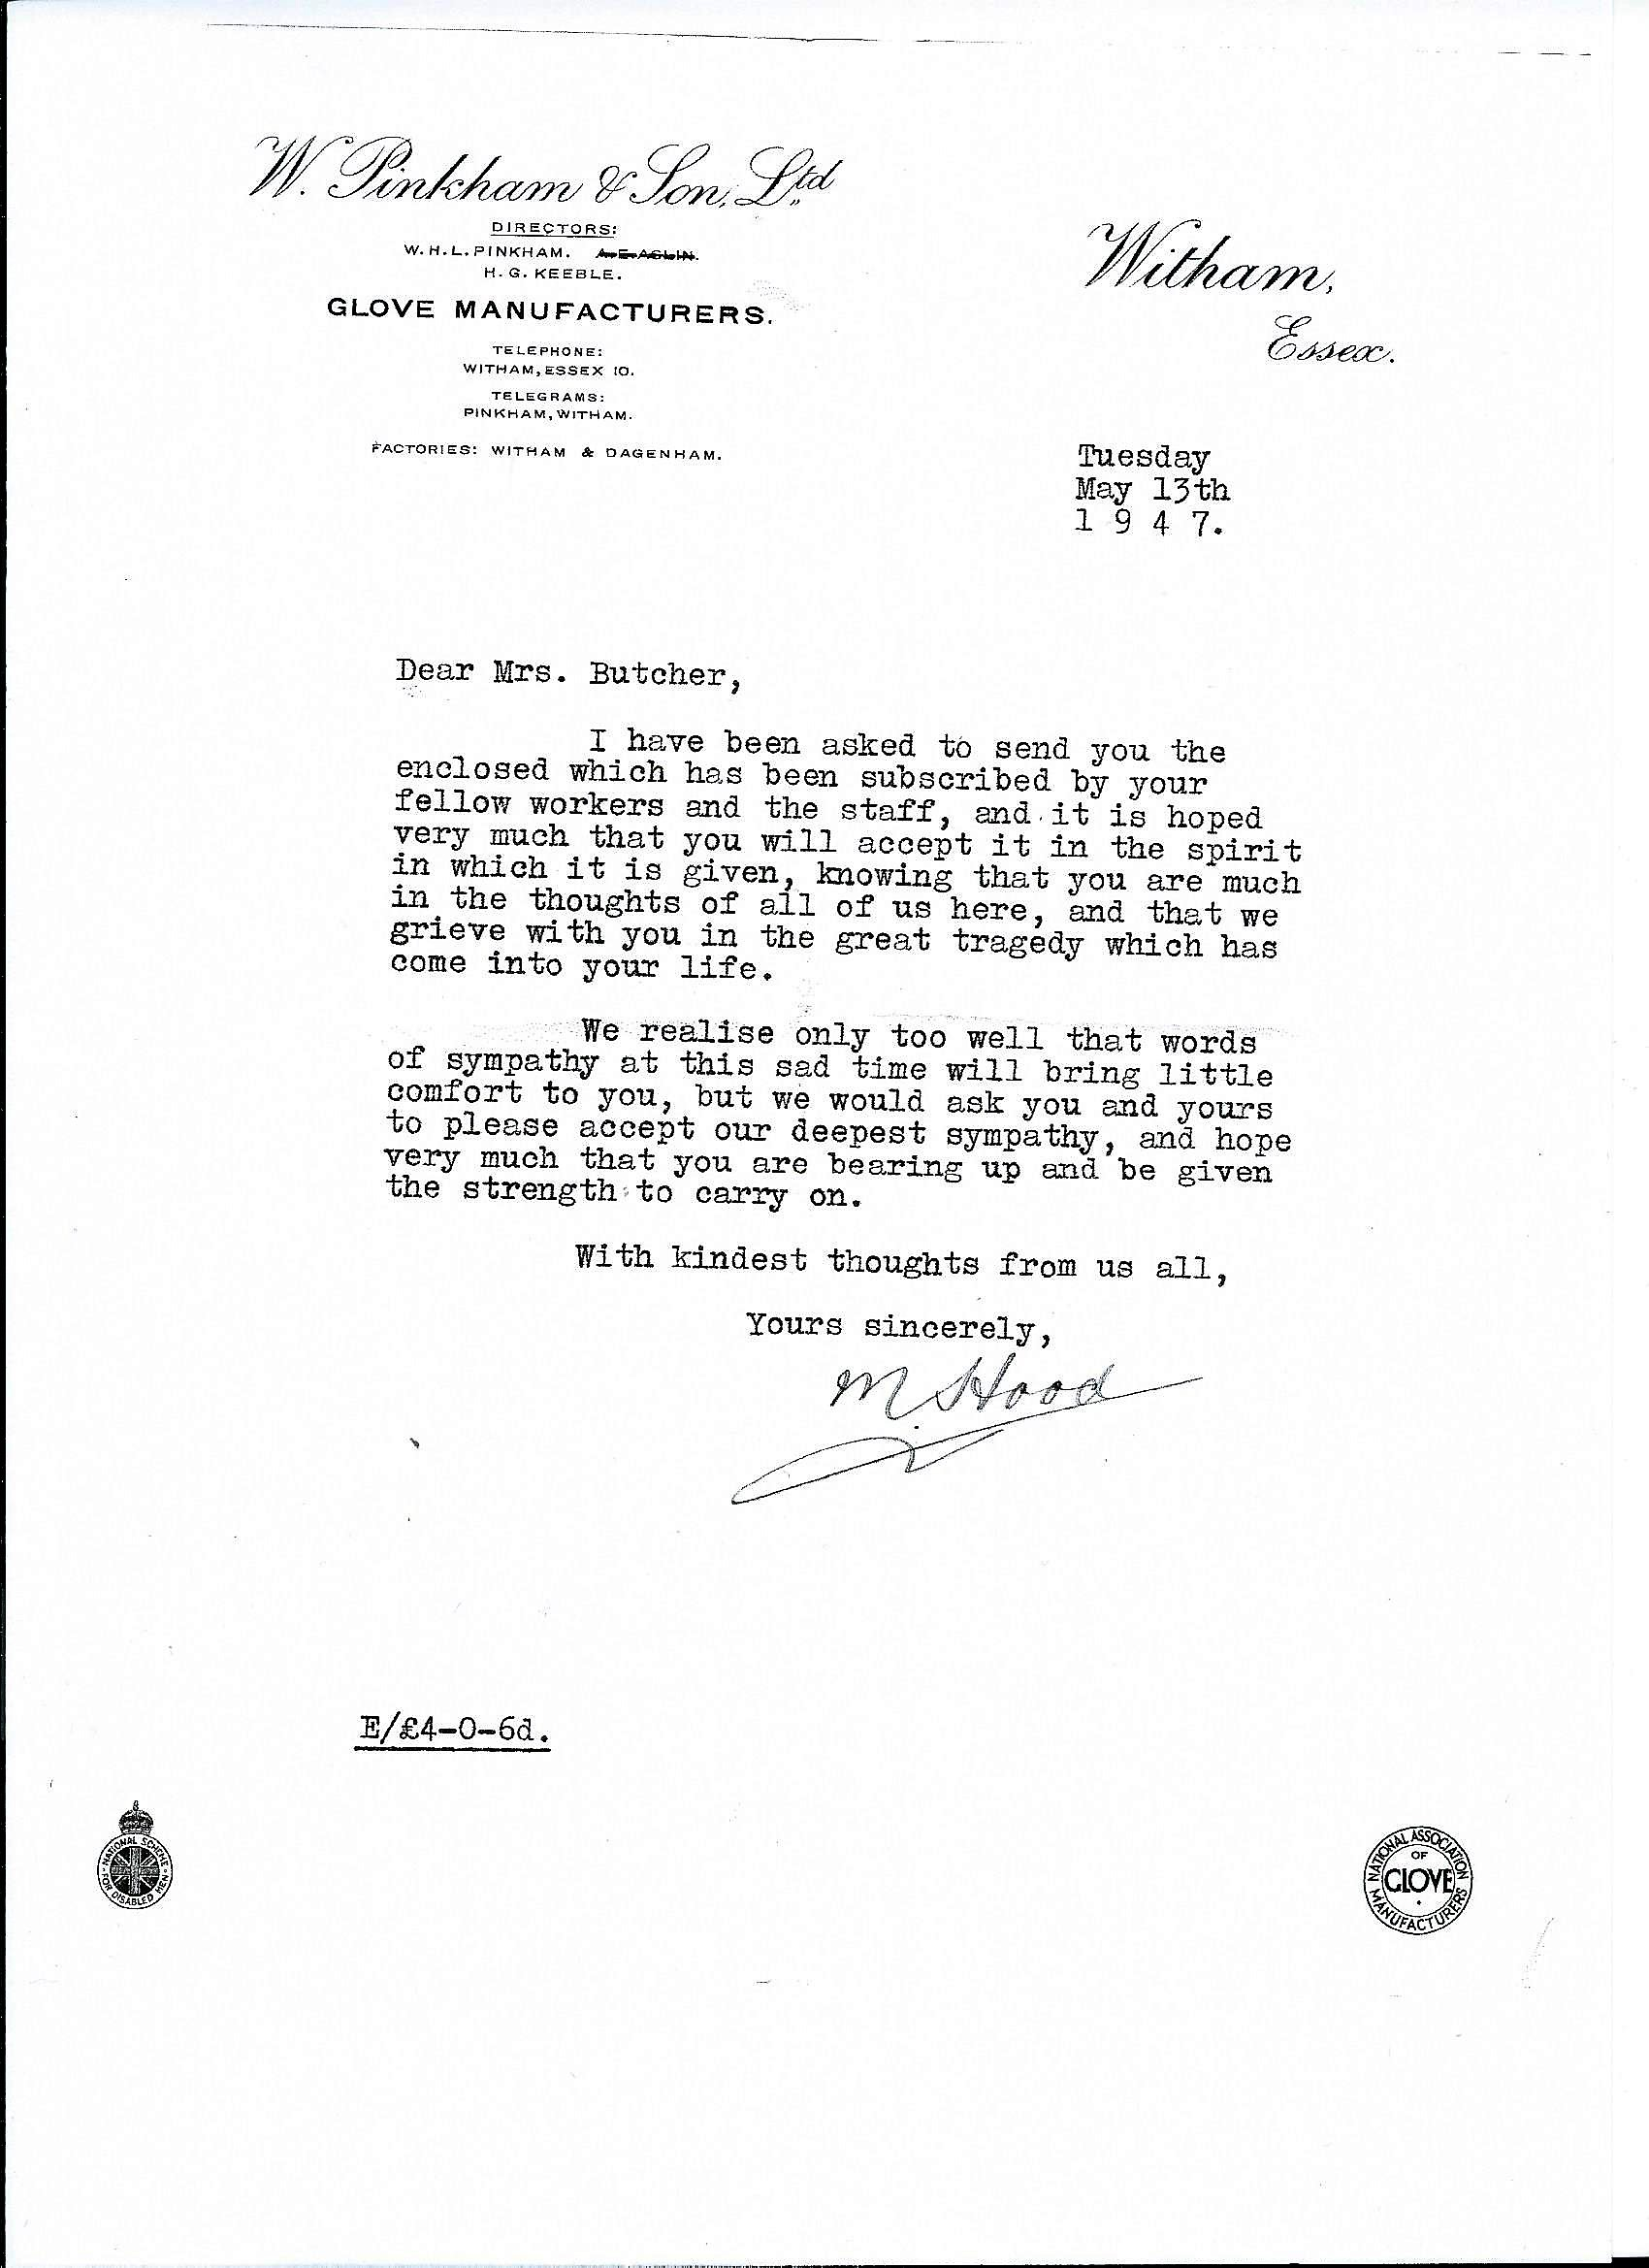 Letter M Hood to Mrs Butcher May 1947